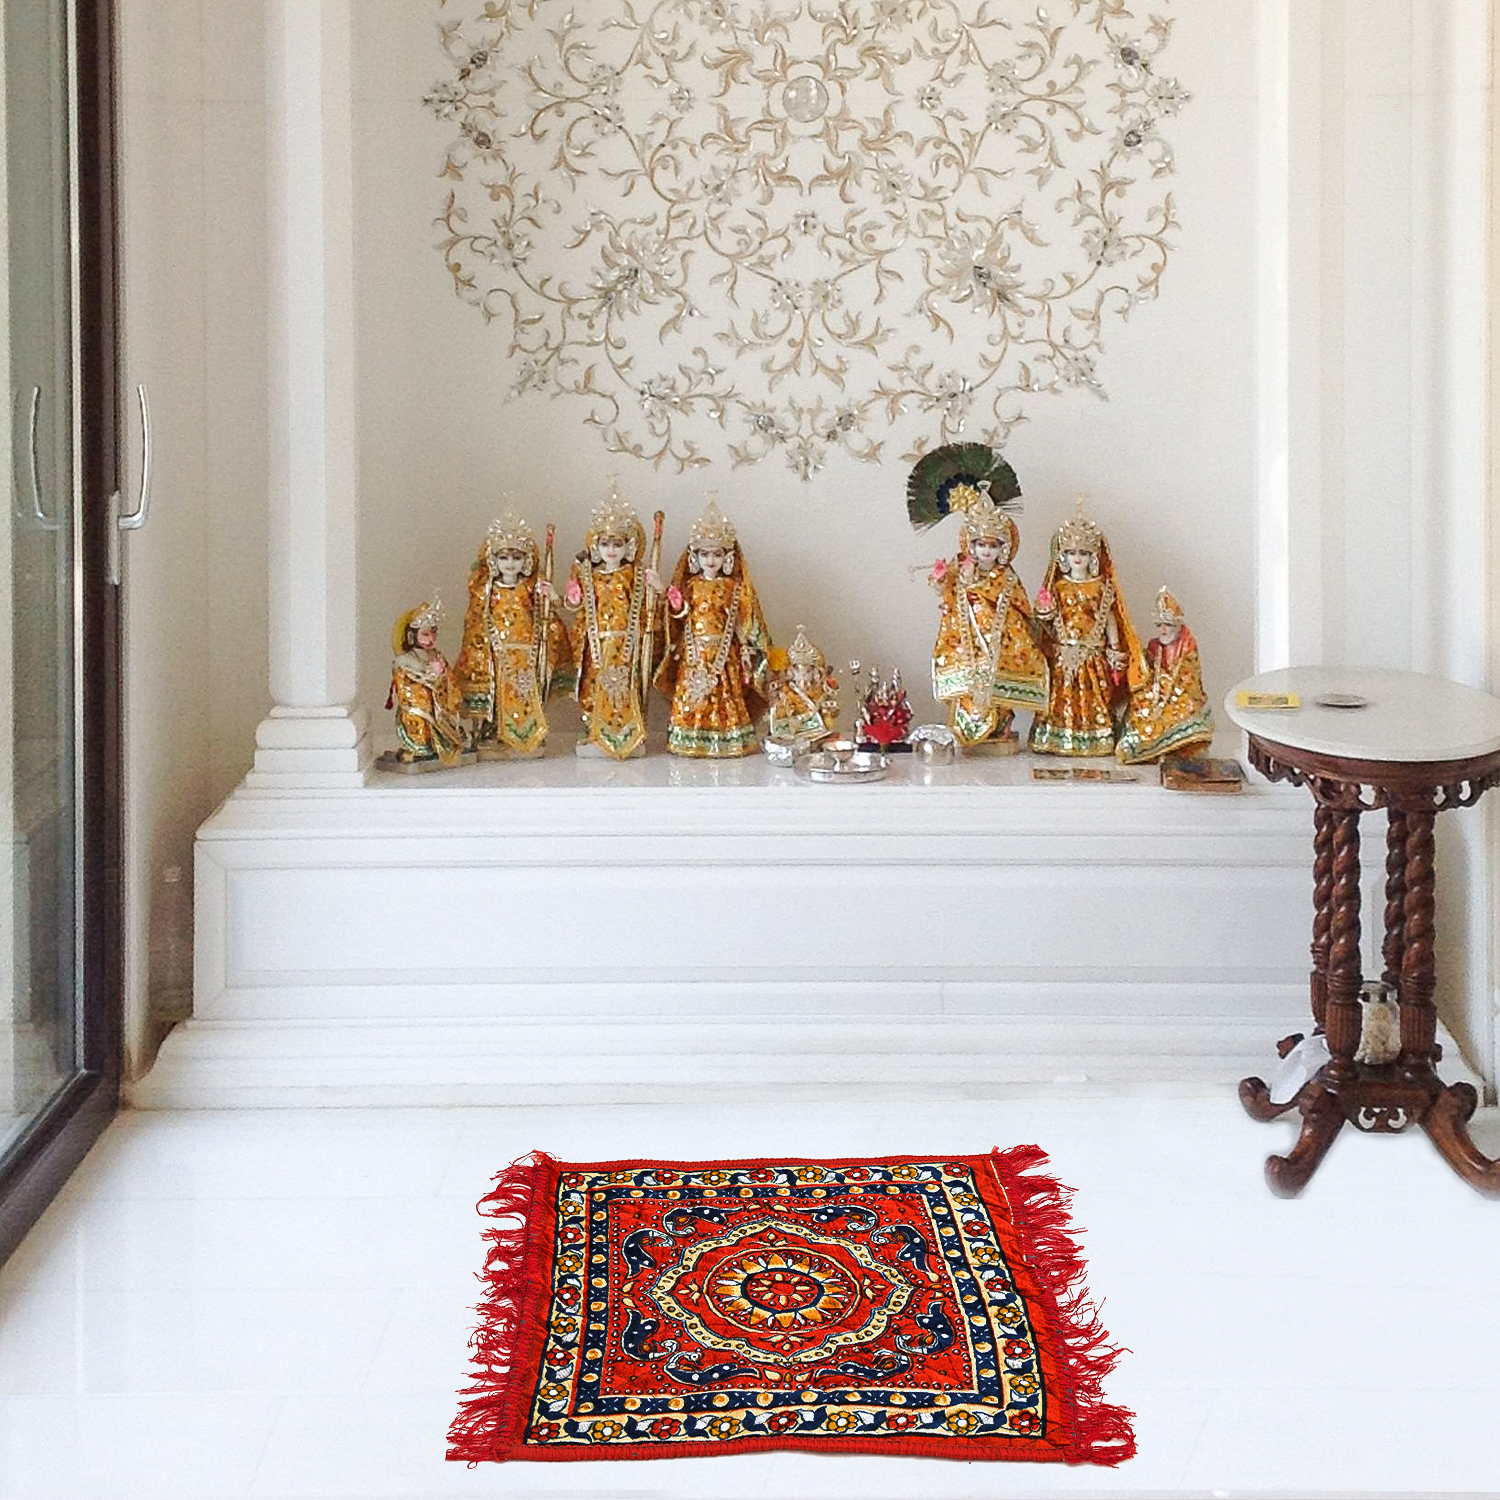 Puja Prayer Mat For Sitting In Pooja Room (velvet Printed)